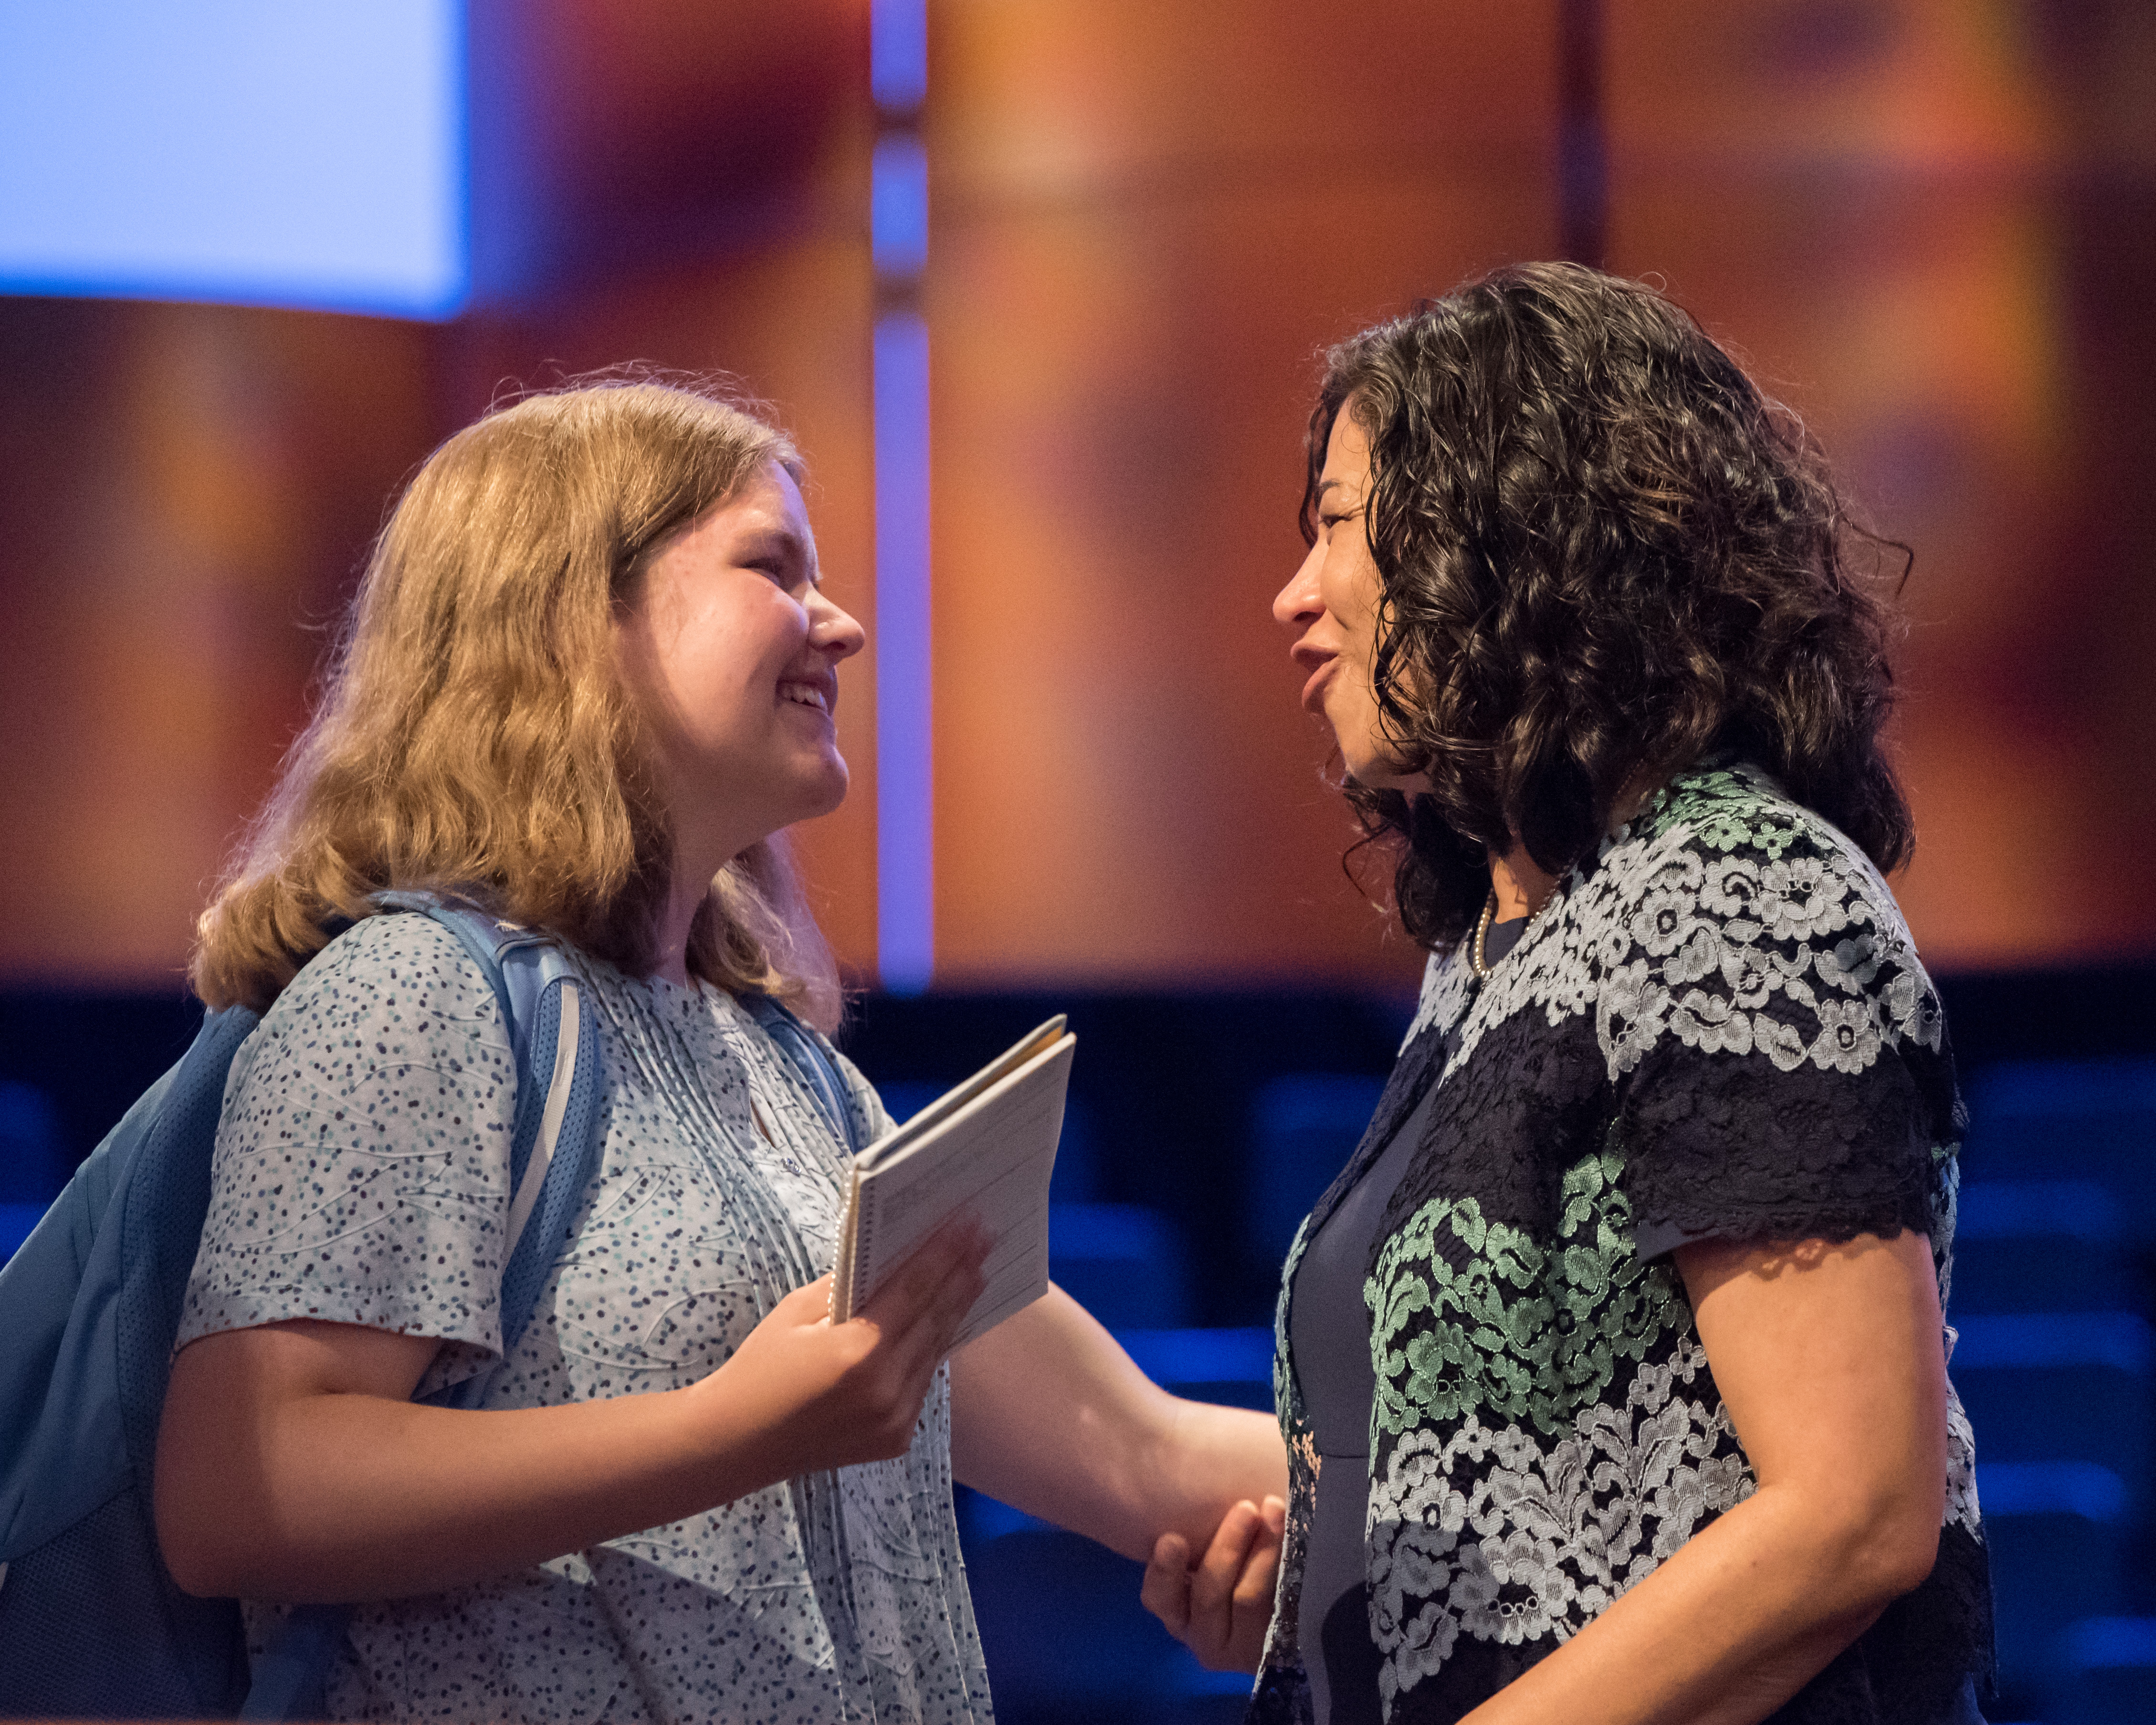 Sister Reyna I. Aburto, second counselor in the Relief Society general presidency, greets a BYU-Idaho student following a devotional held on June 4, 2019.